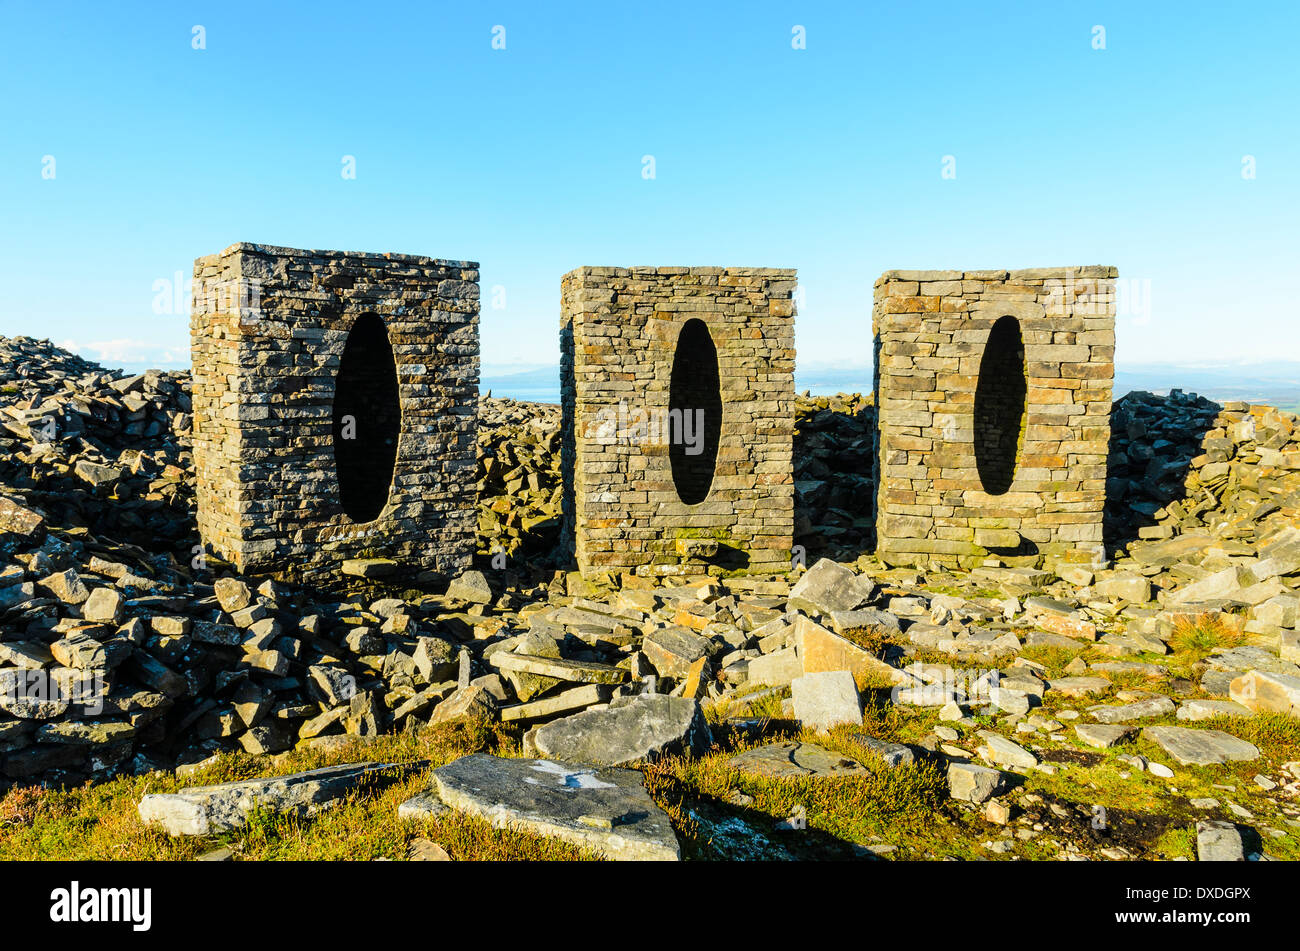 "Andy Goldsworthy artwork ""Clougha Pike"" on the hill of the same name in the Forest of Bowland Lancashire England - Stock Image"